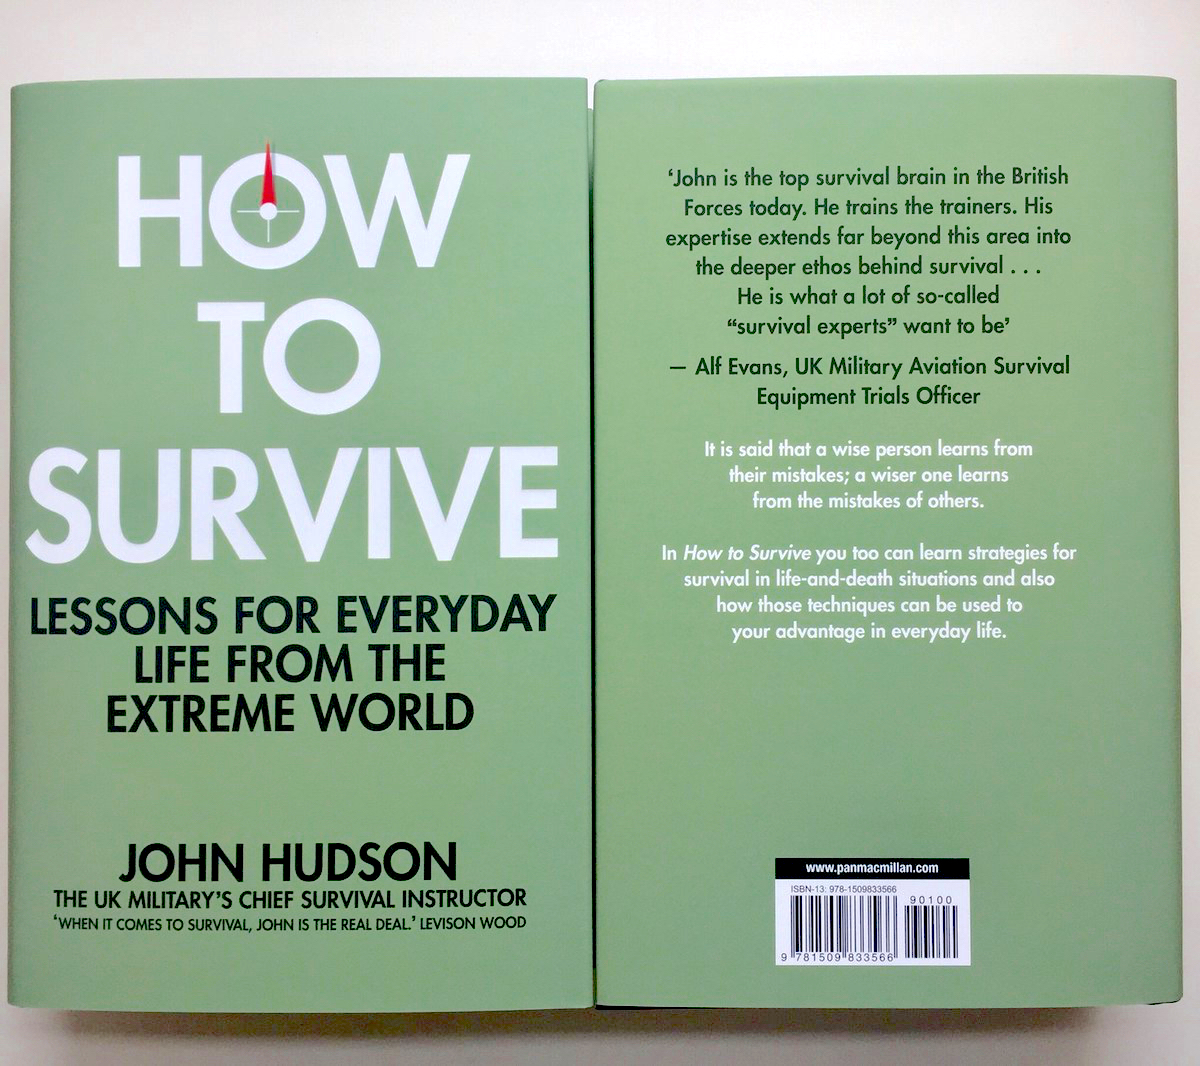 How to Survive covers, many thanks to Lev and Alf for their quotes